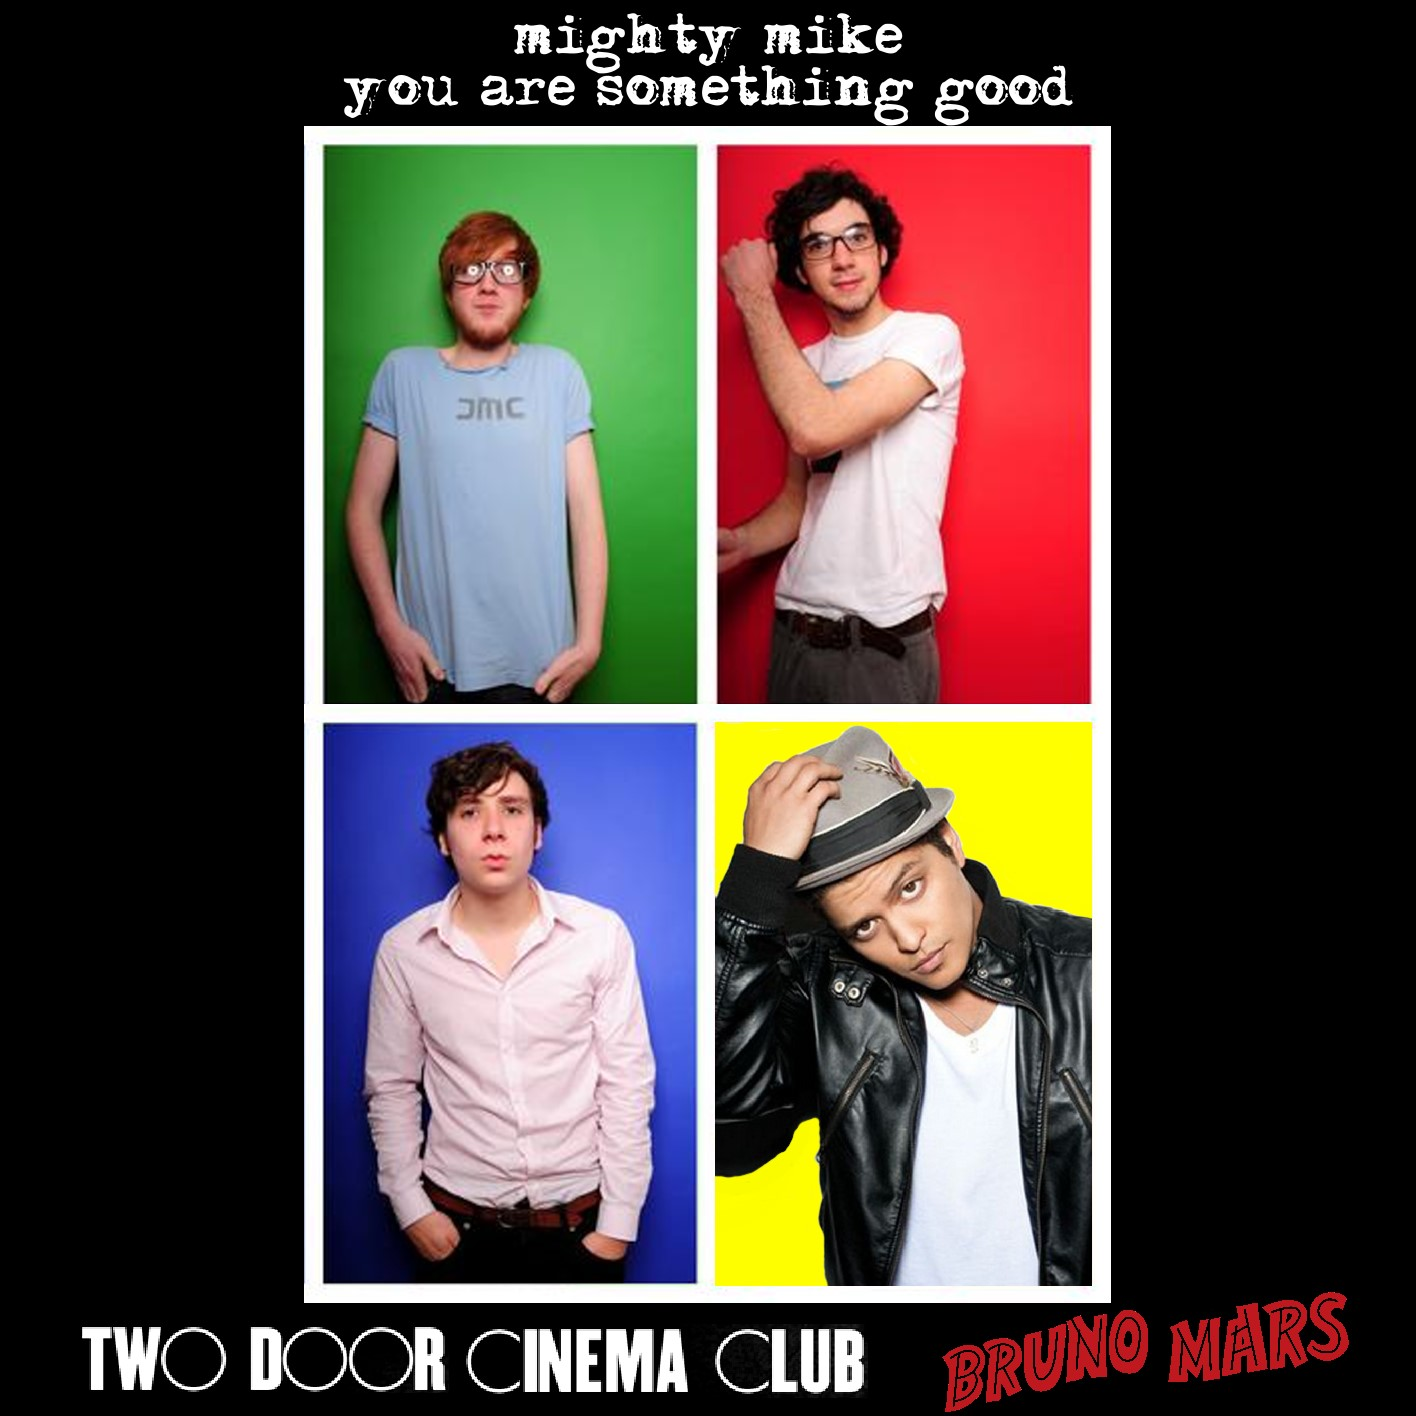 You are something good (Bruno Mars / Two Door Cinema Club) (2012)